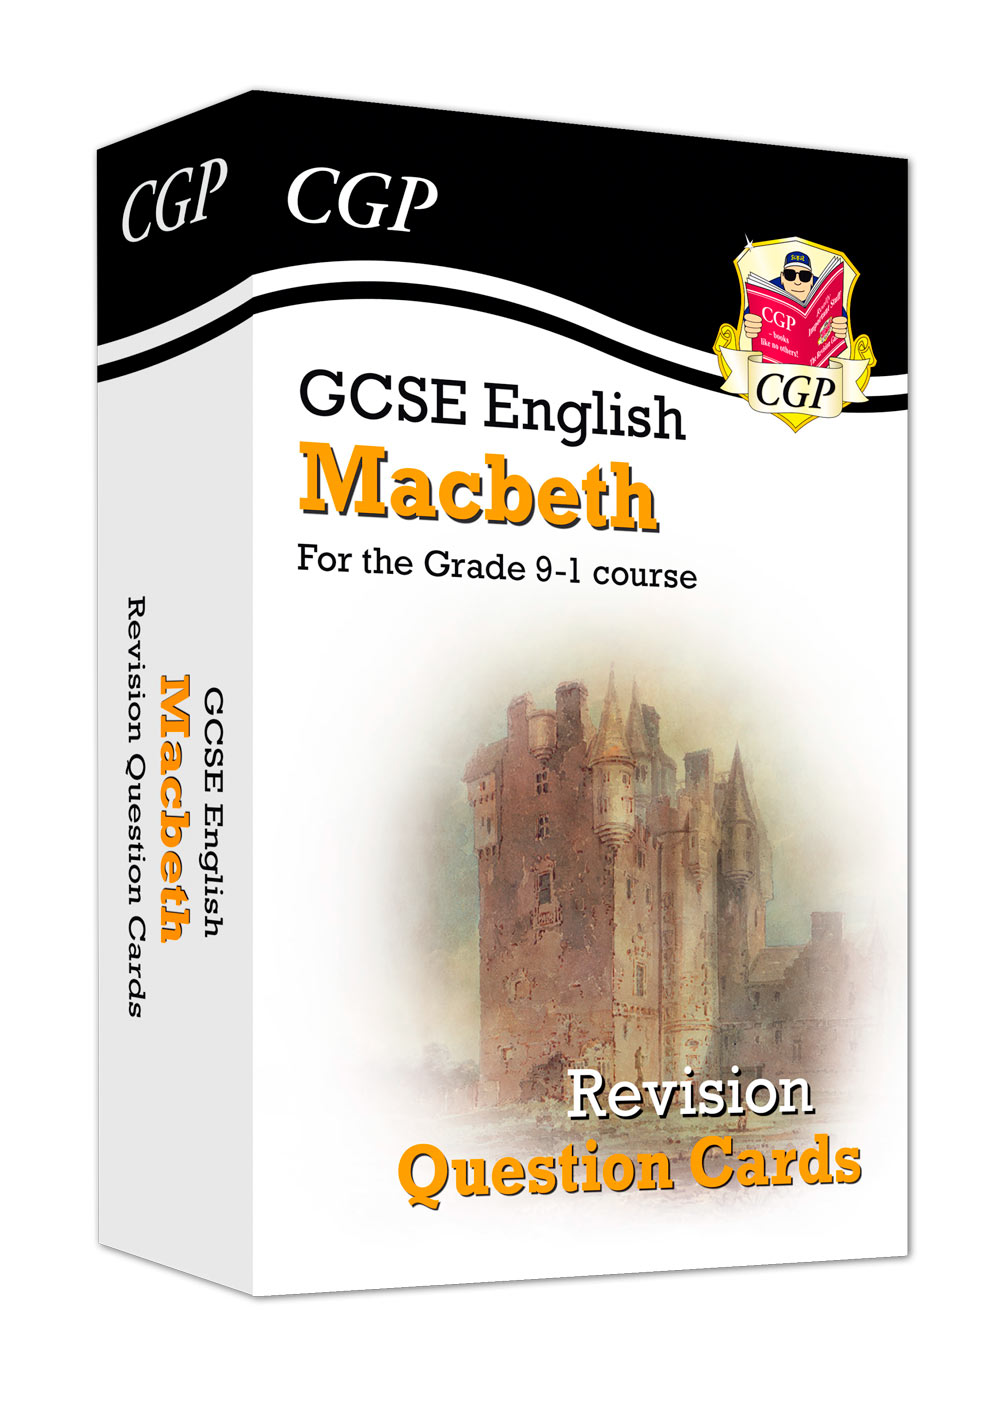 ETFM41 - New Grade 9-1 GCSE English Shakespeare - Macbeth Revision Question Cards